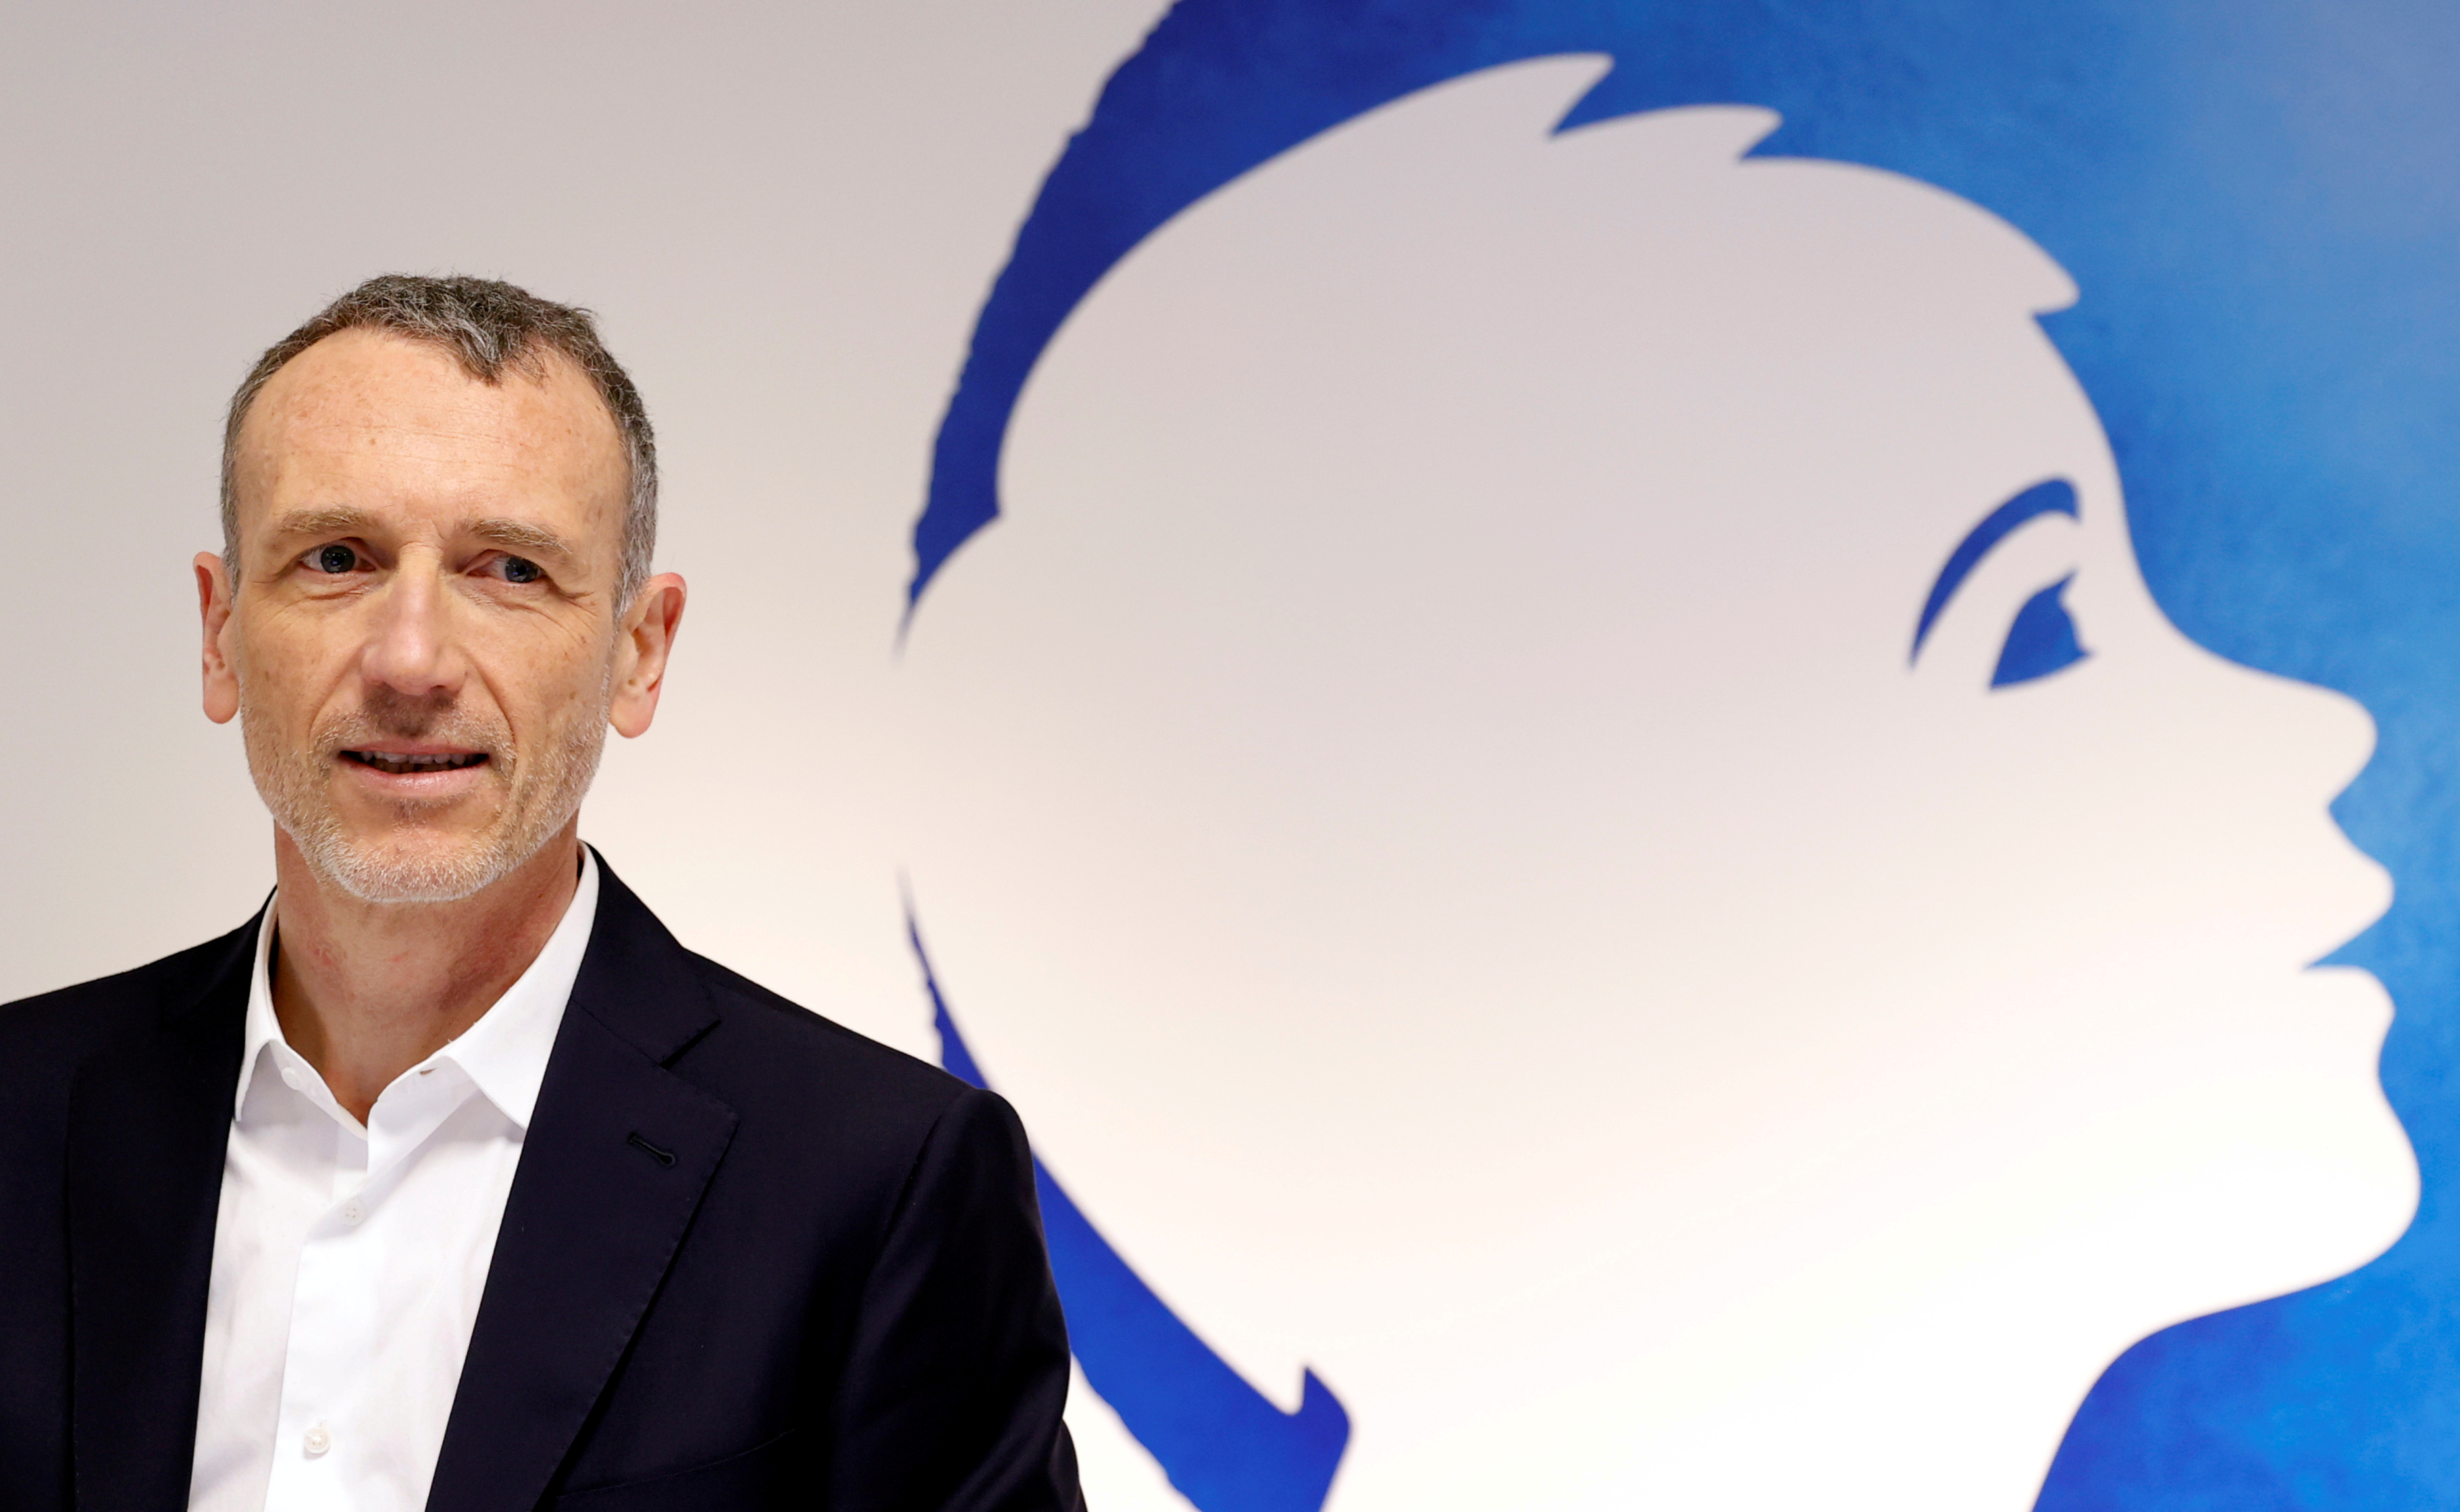 Emmanuel Faber, Chief Executive of French food group Danone, poses before a news conference to present the company